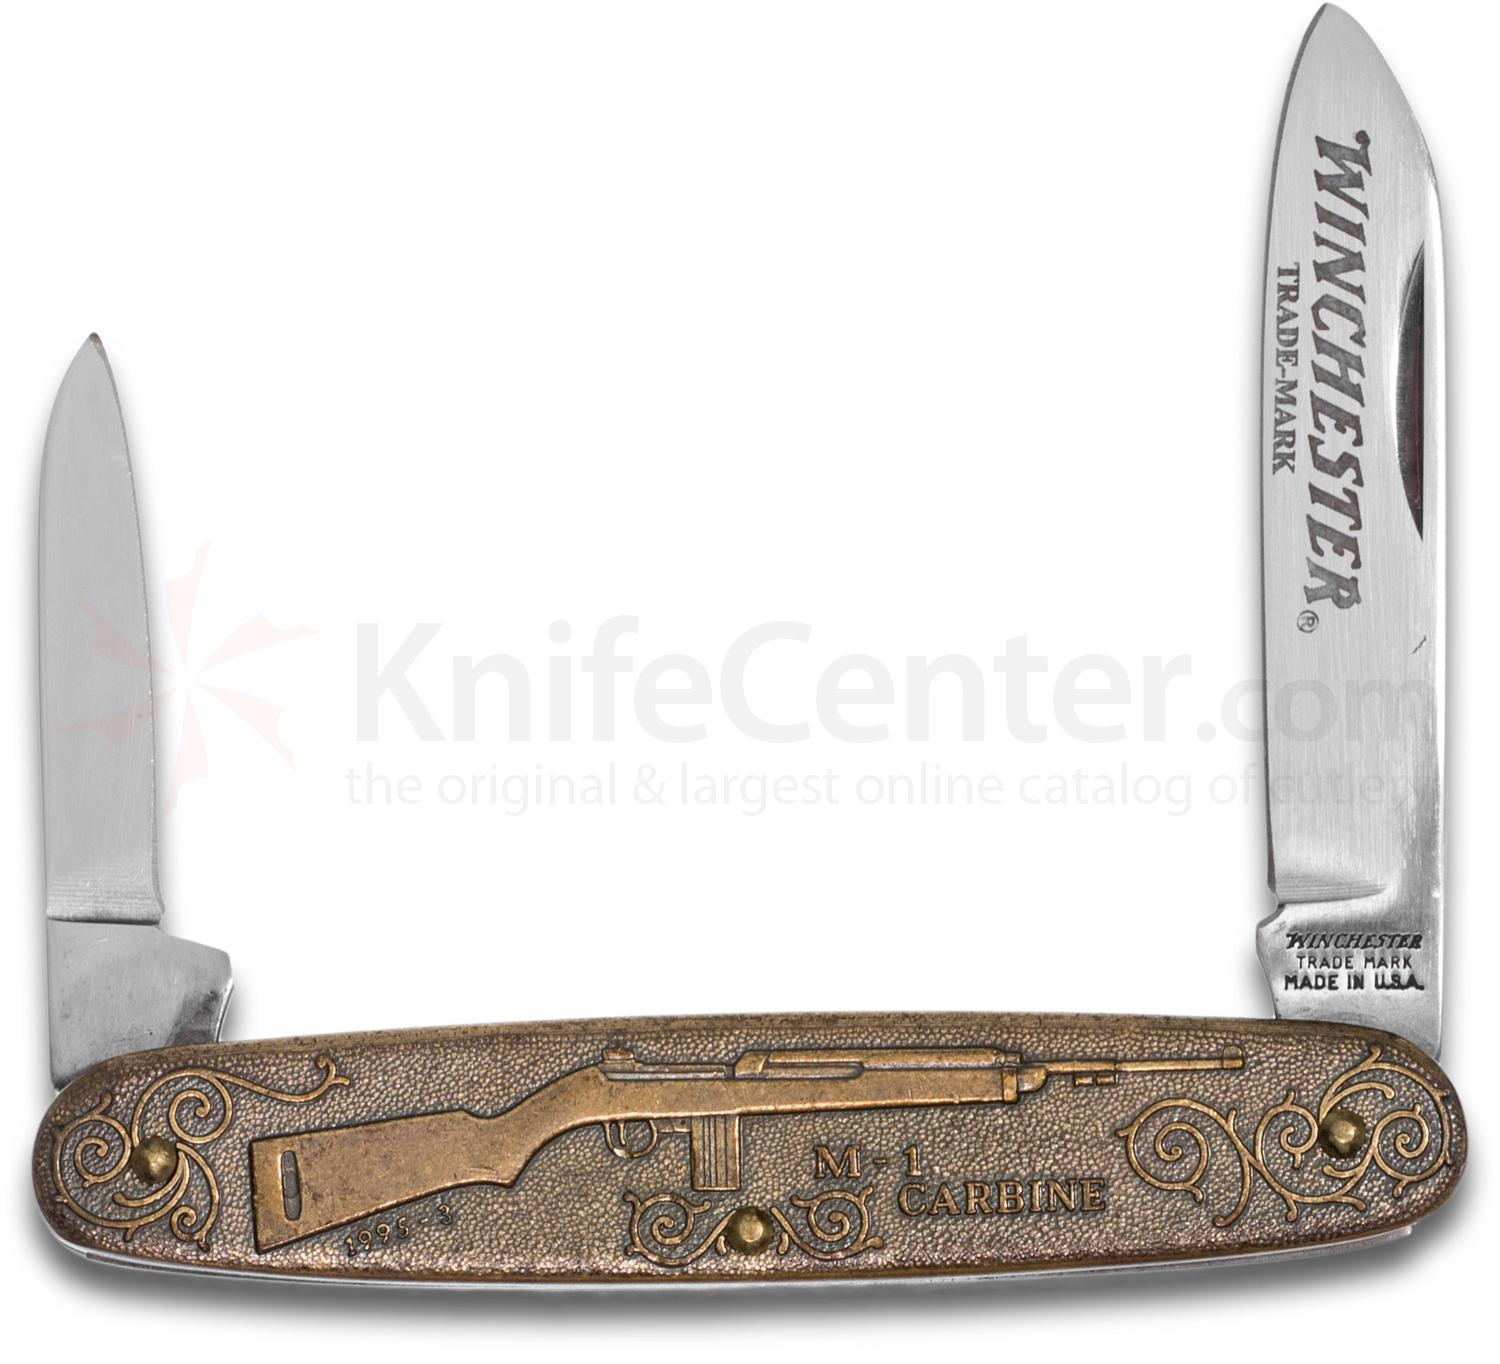 Winchester M1 Carbine Commemorative Pen Knife 3.5 inch Closed, Relief Bronze Handles